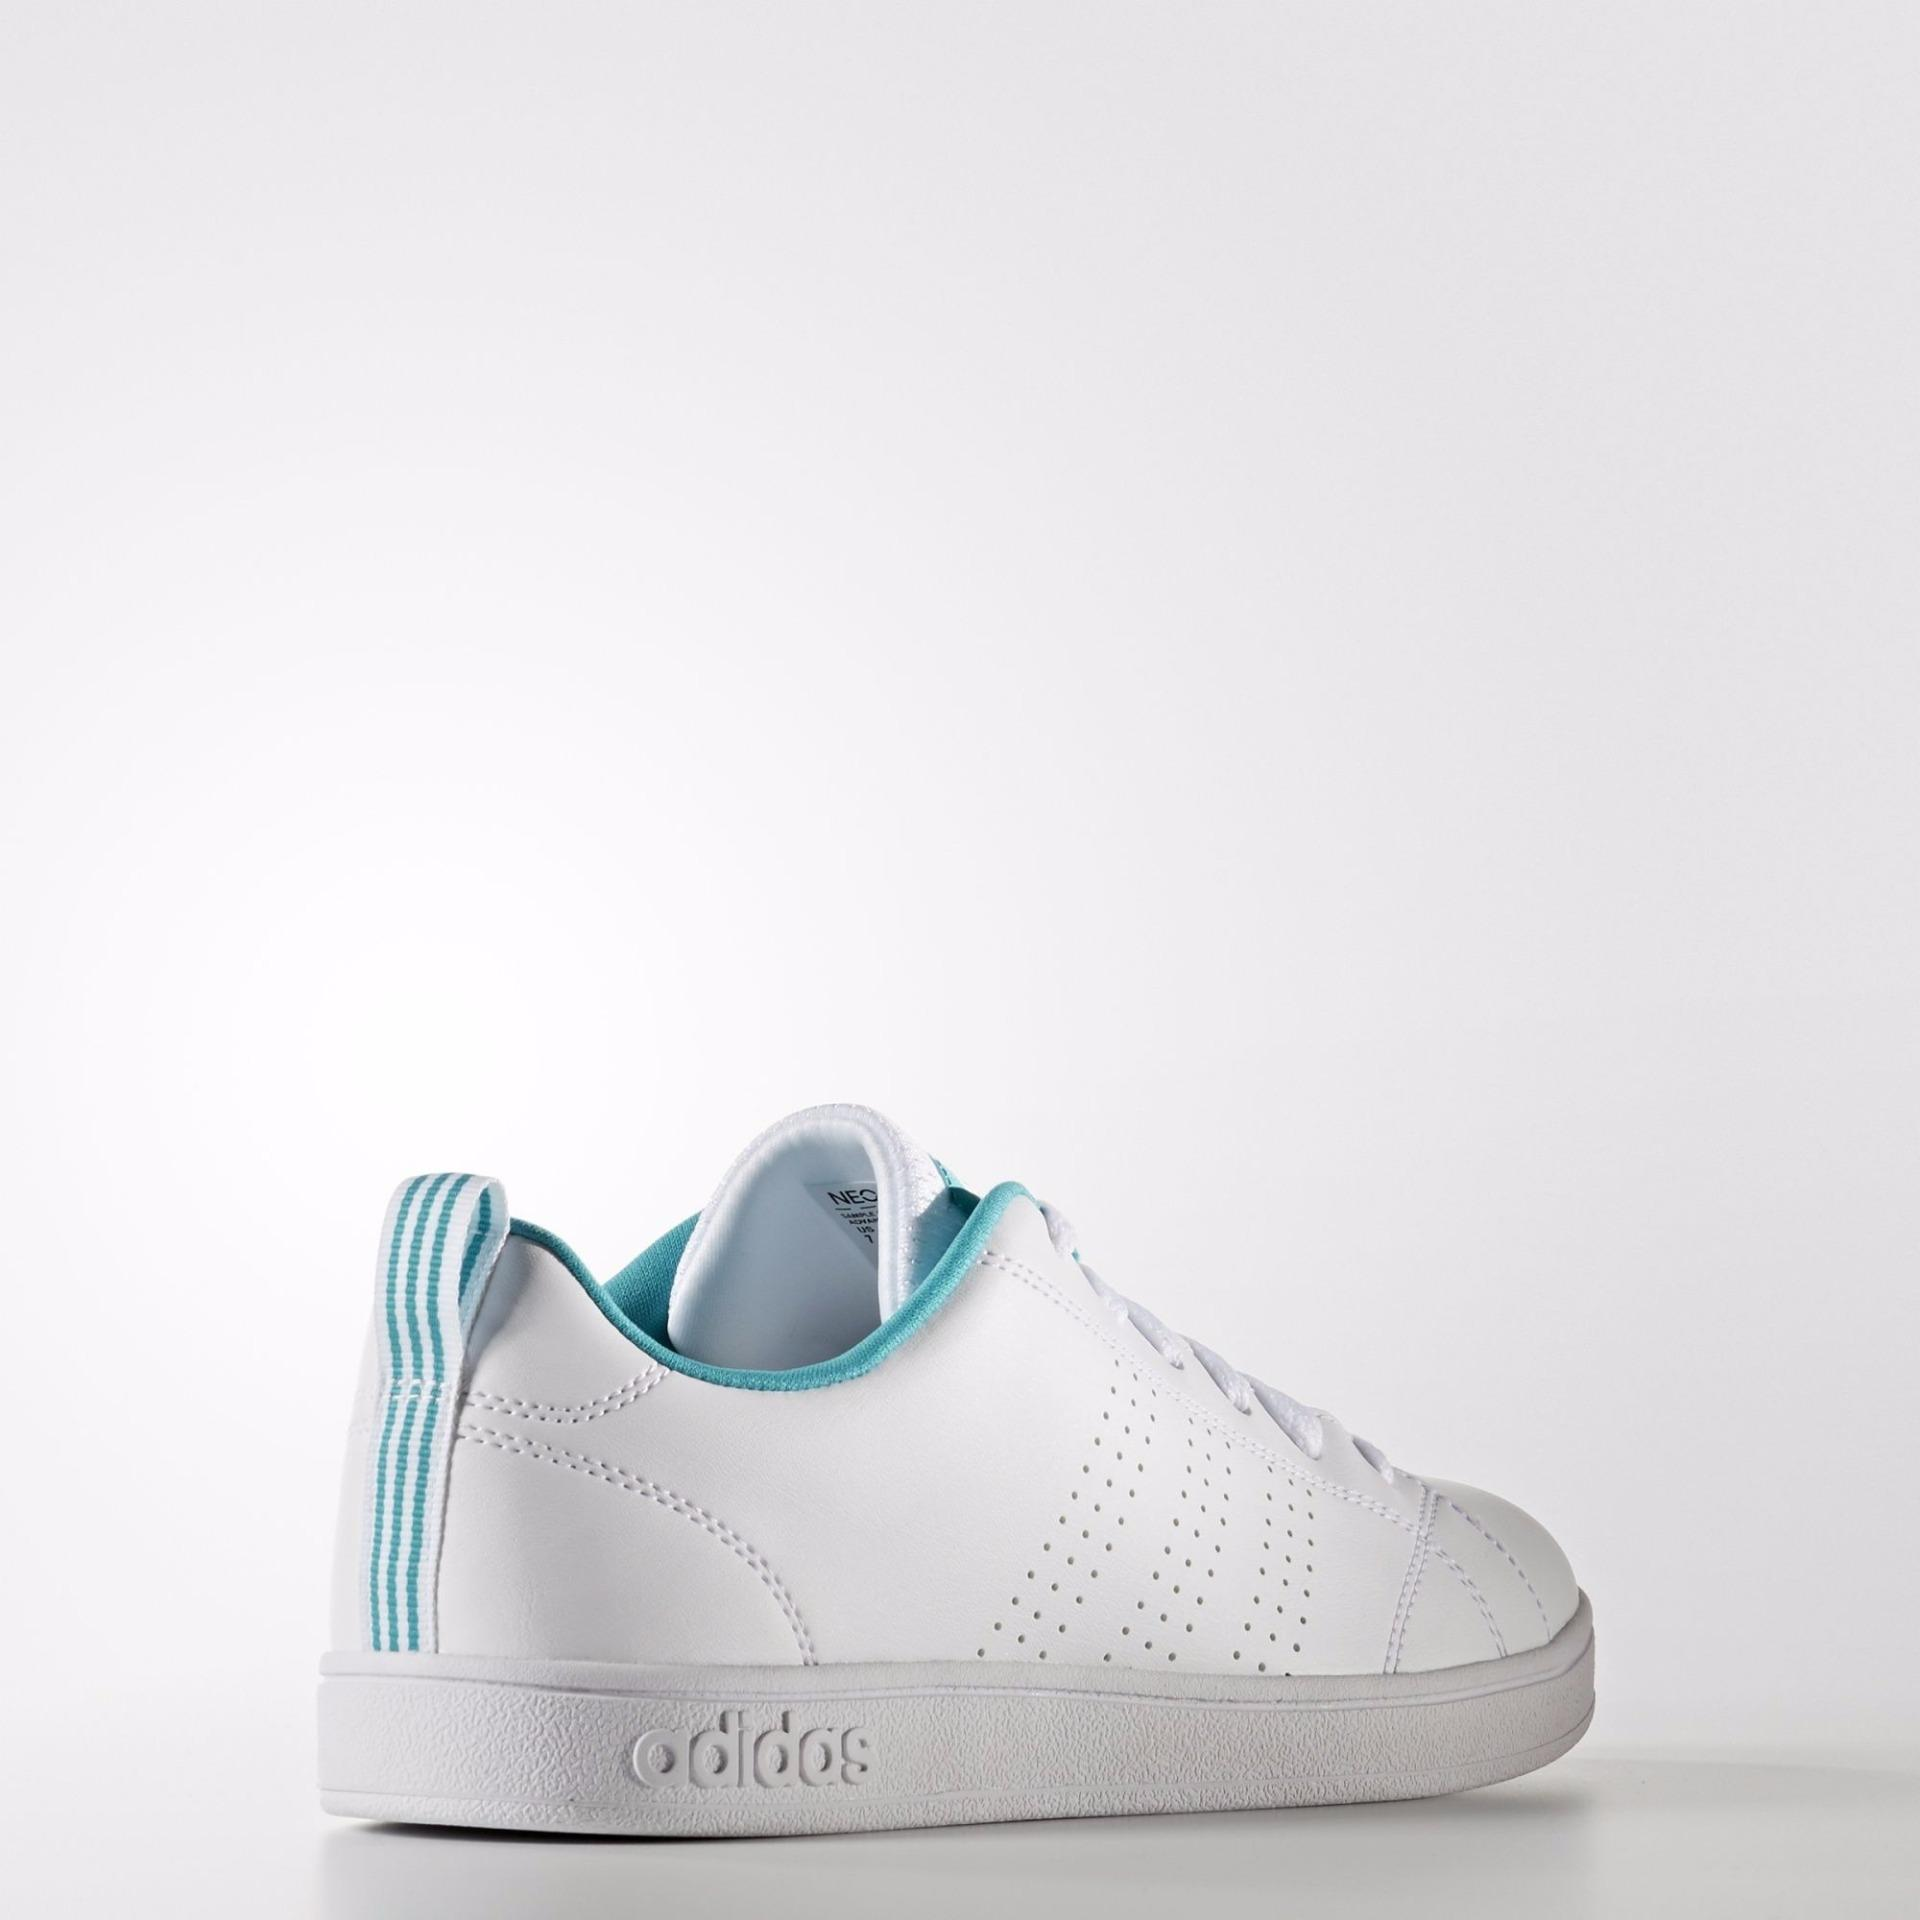 ... promo code for adidas neo advantage clean white tosca aw4746 . c7228 8ee09